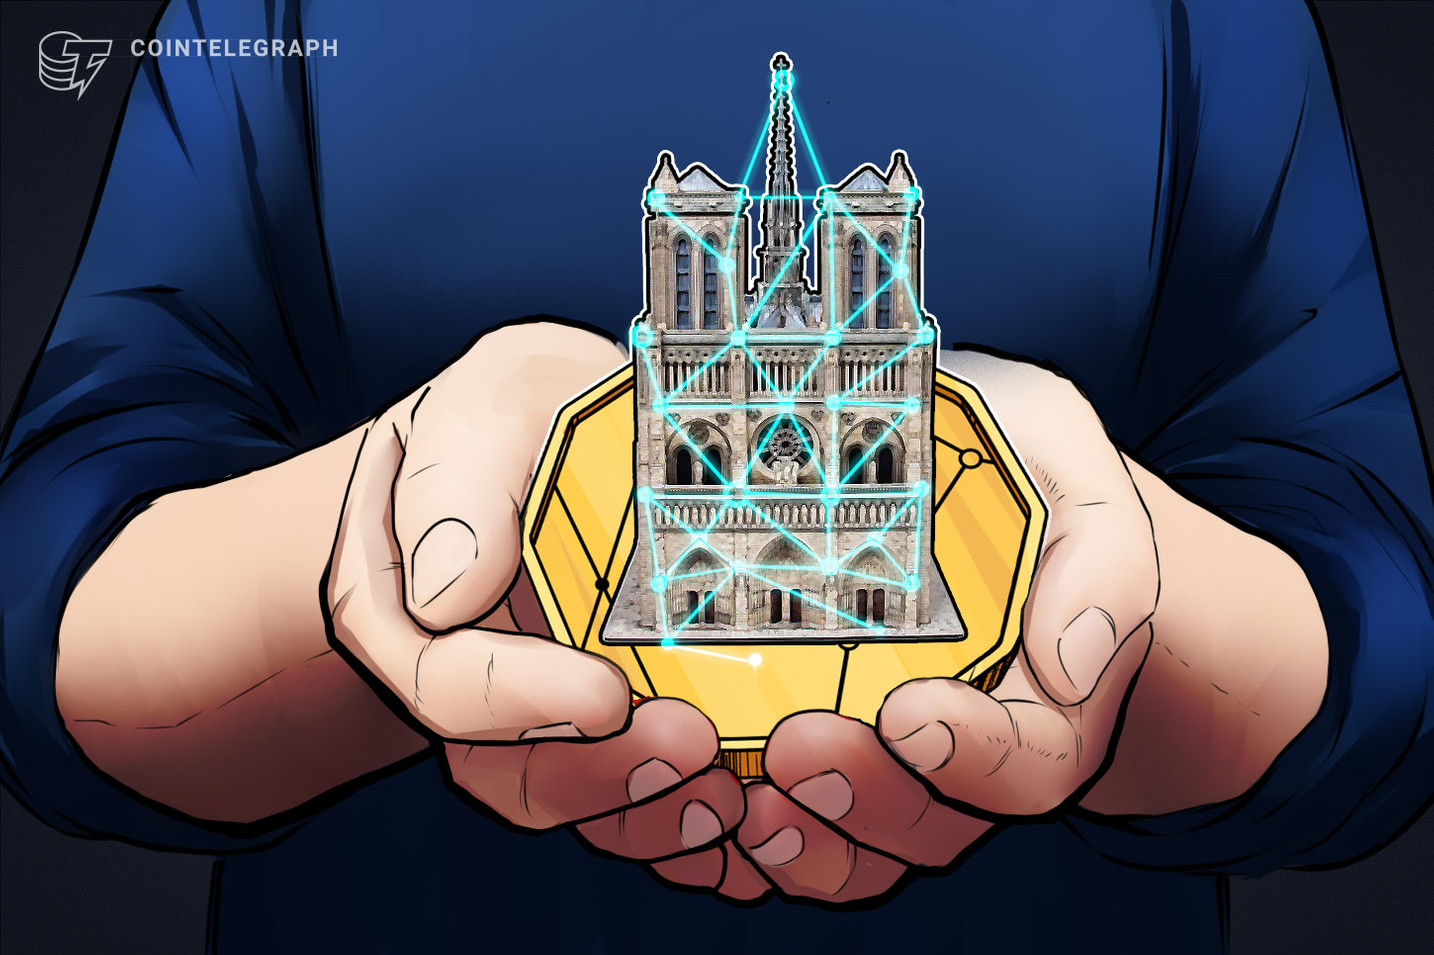 French Gov't Minister Open to Enabling Crypto Donations for Notre Dame